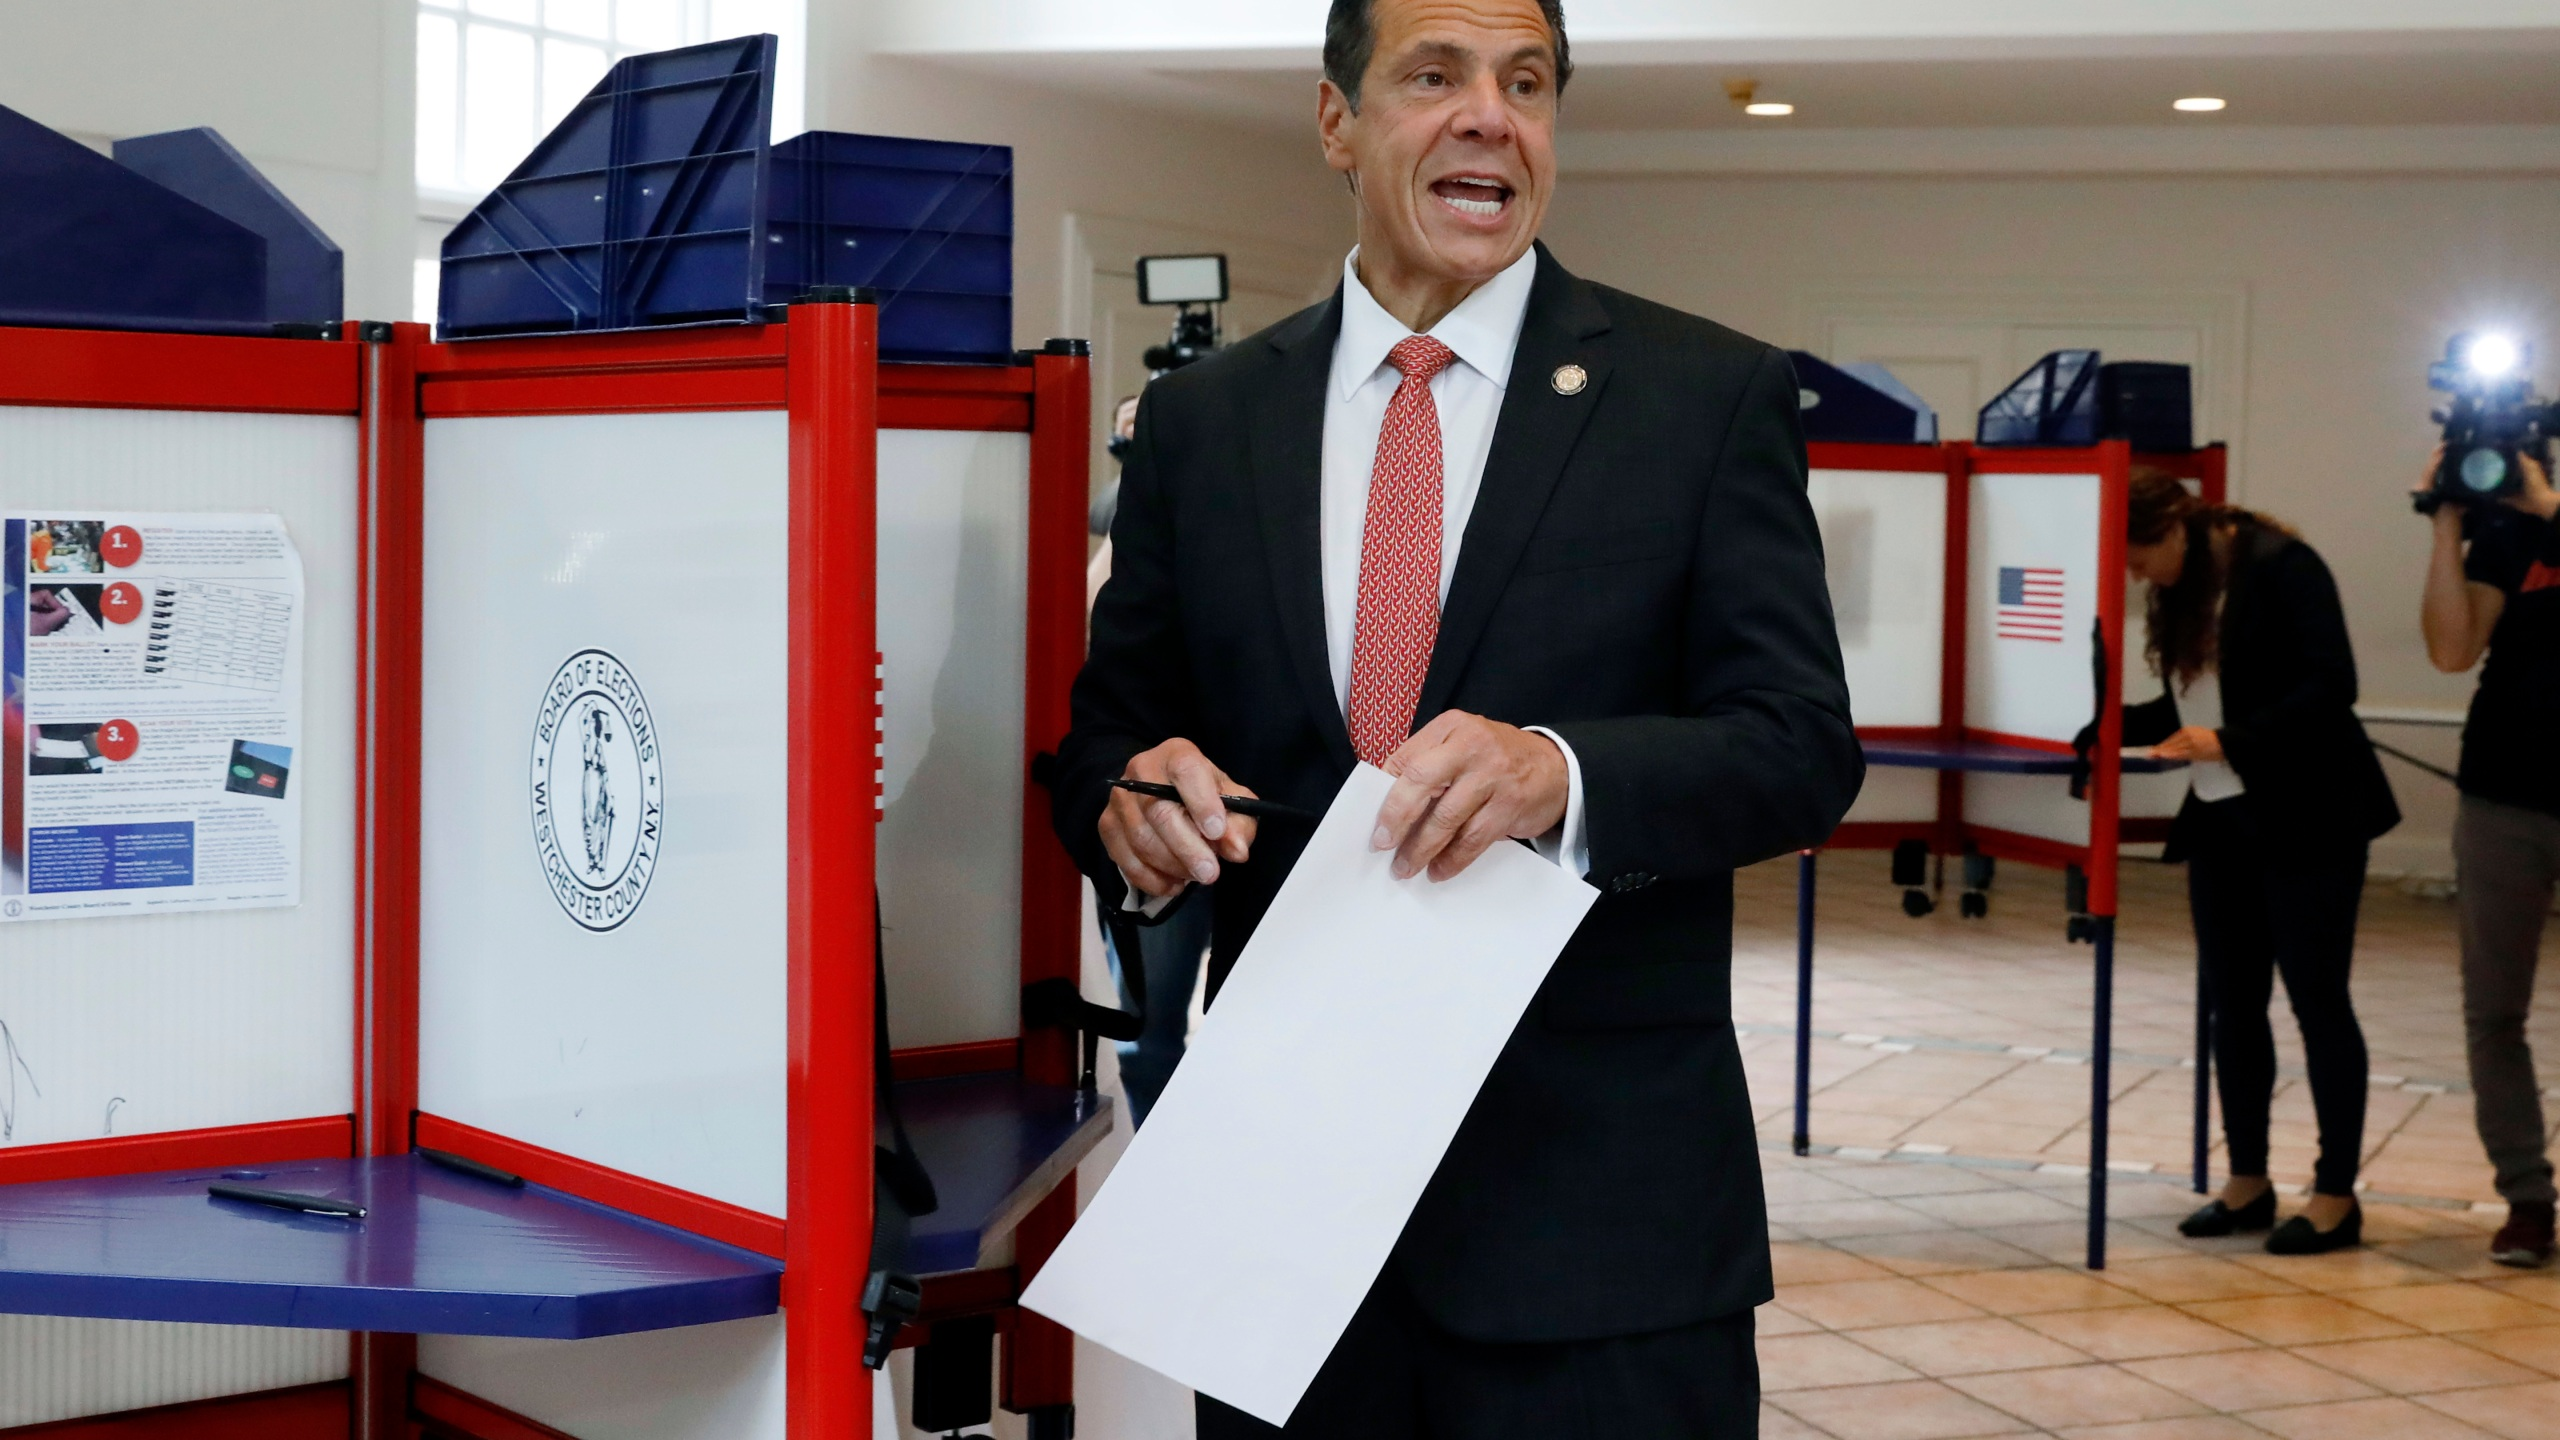 Election_2018_Governor_Cuomo_51107-159532.jpg11843569